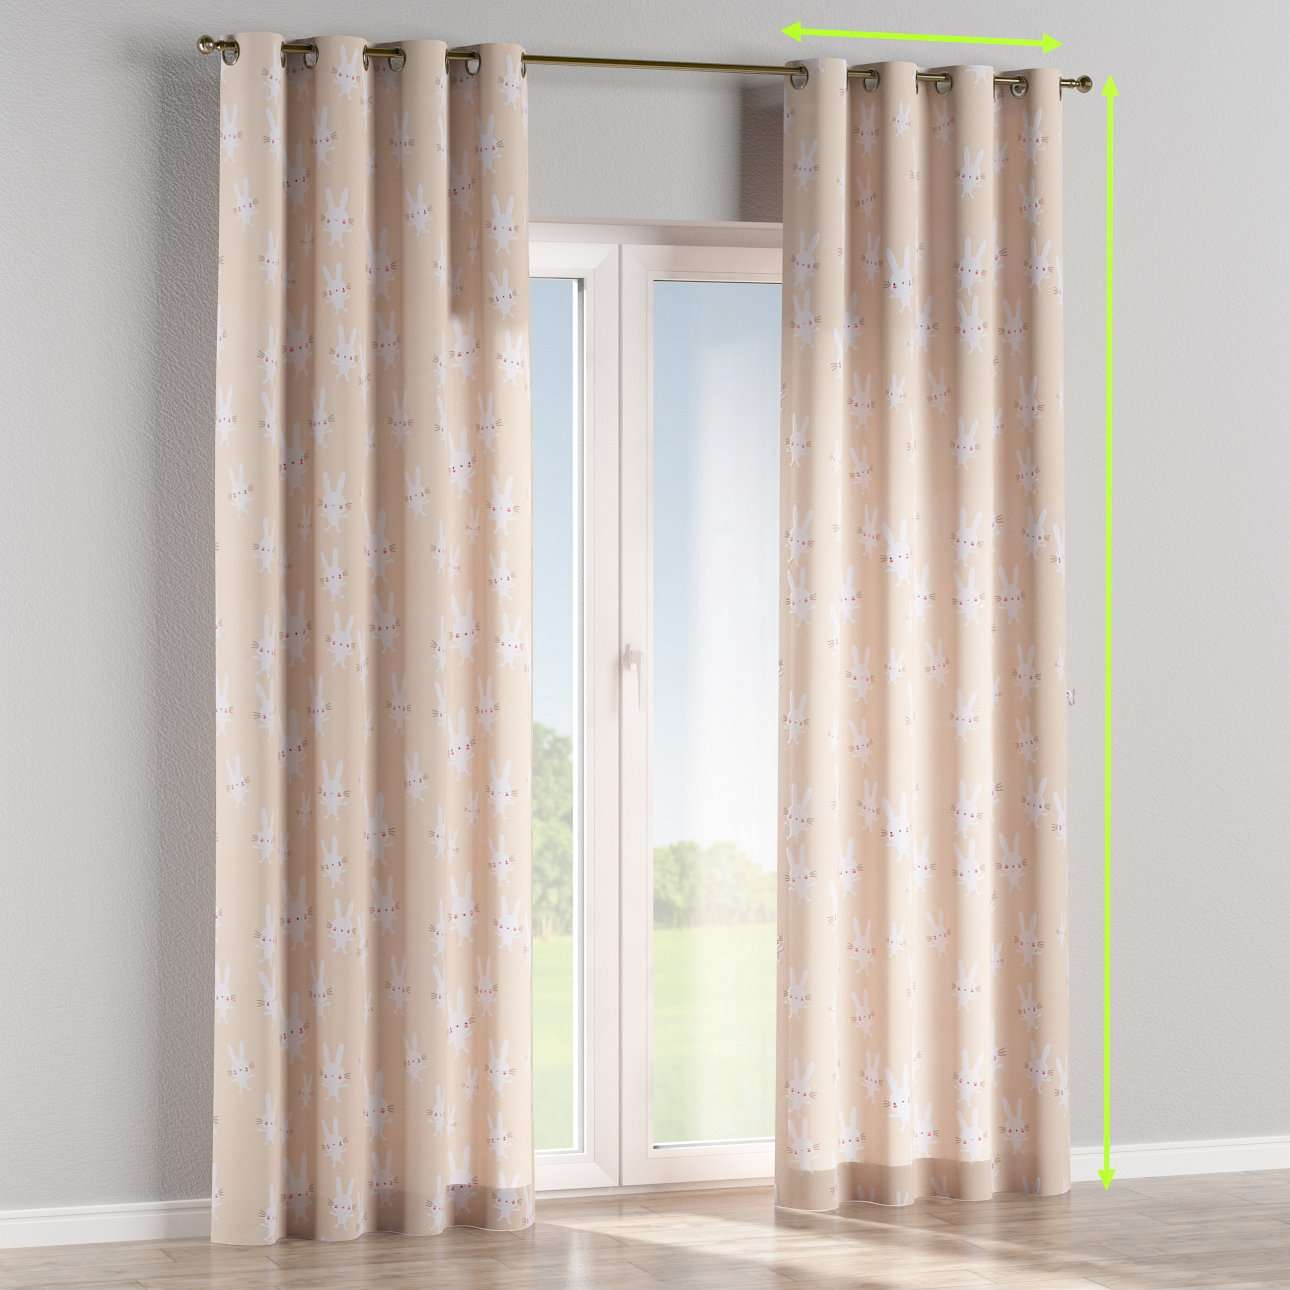 Eyelet curtains in collection Apanona, fabric: 151-00